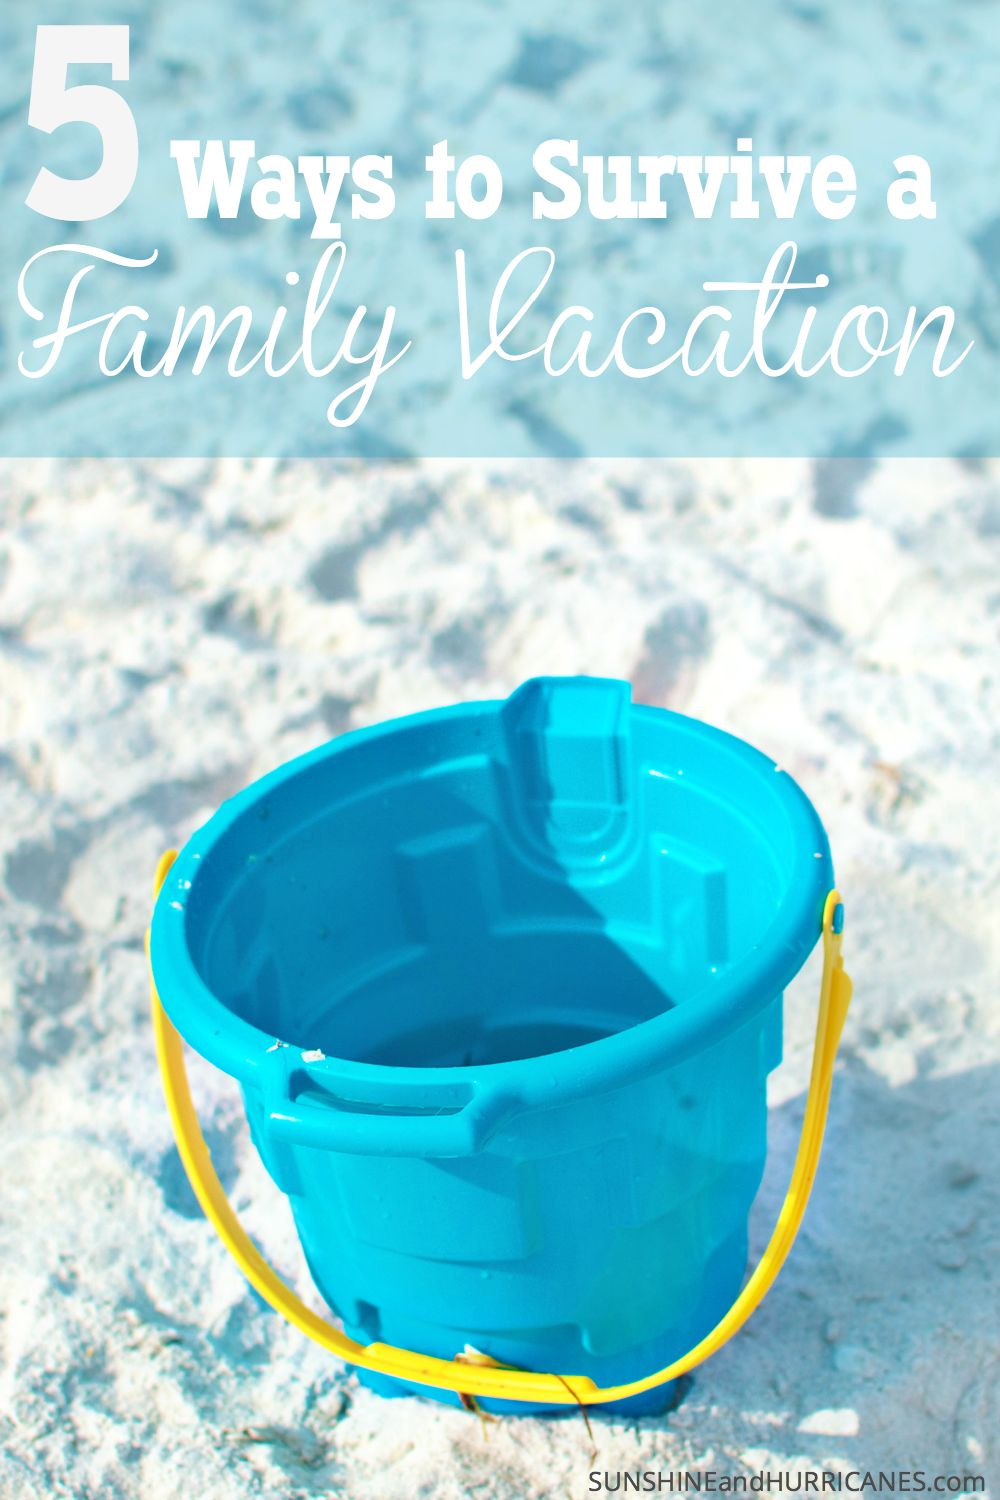 Do you typically have an ideal image of what a family vacation is going to look like only to have the reality turn out to be a disappointment? First, we have to understand the difference between a vacation and a family trip. Then we need to prepared for as many family trip pitfalls as possible so we can actually have fun and create those memories we imagine. 5 Ways to Survive a Family Vacation. SunshineandHurricanes.com